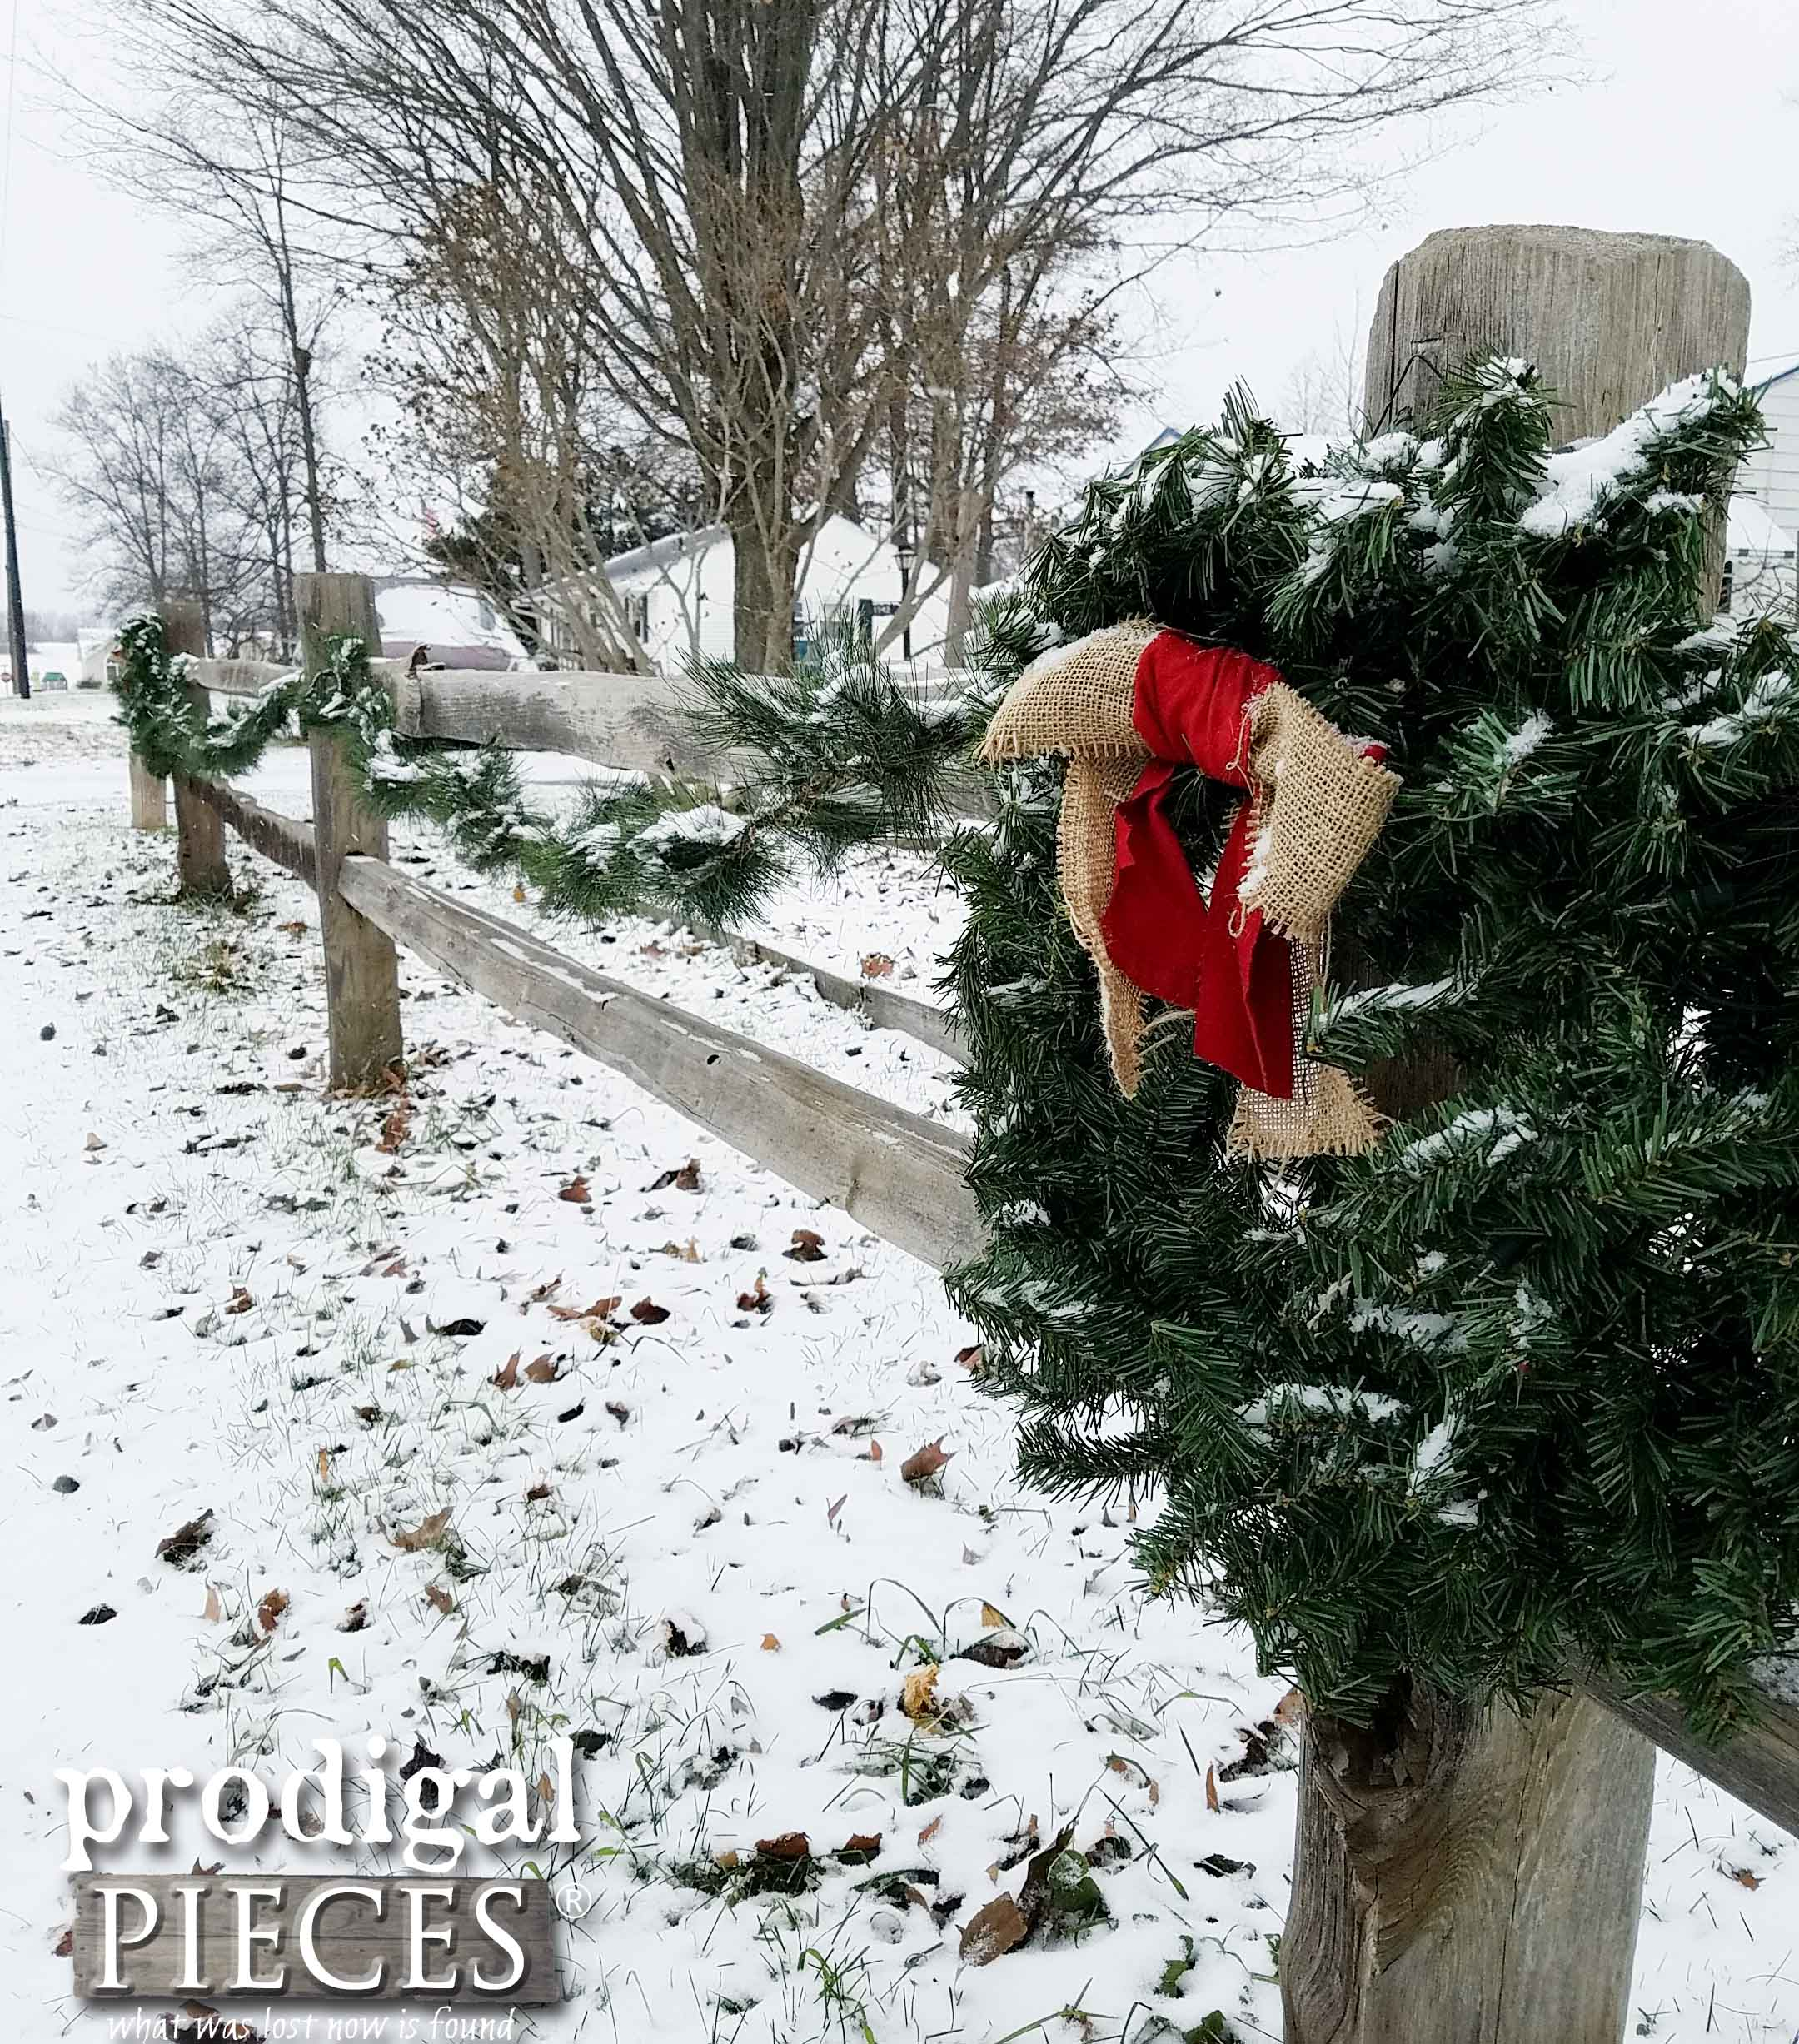 Split Rail Fence with Holiday Garland and Wreaths | Prodigal Pieces | prodigalpieces.com